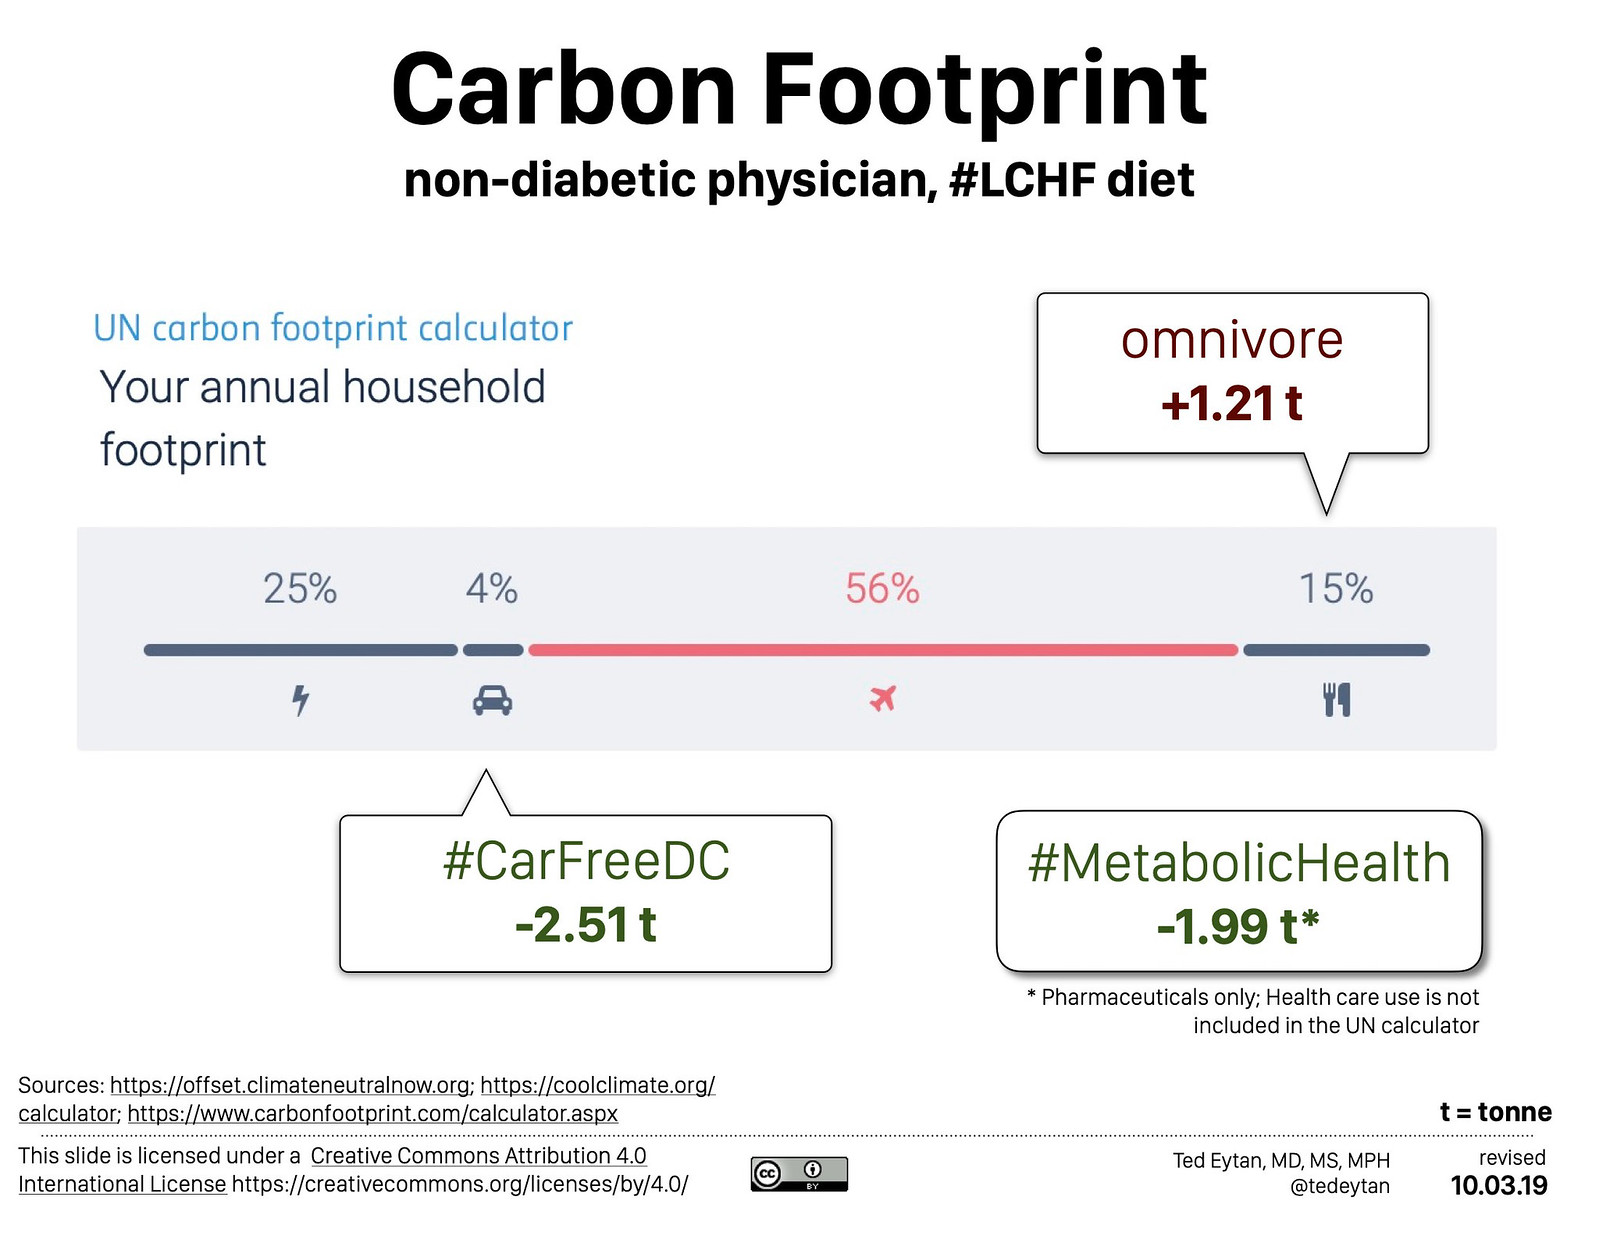 2018.05 Low Carb and Low Carbon - Ted Eytan MD-1001 793